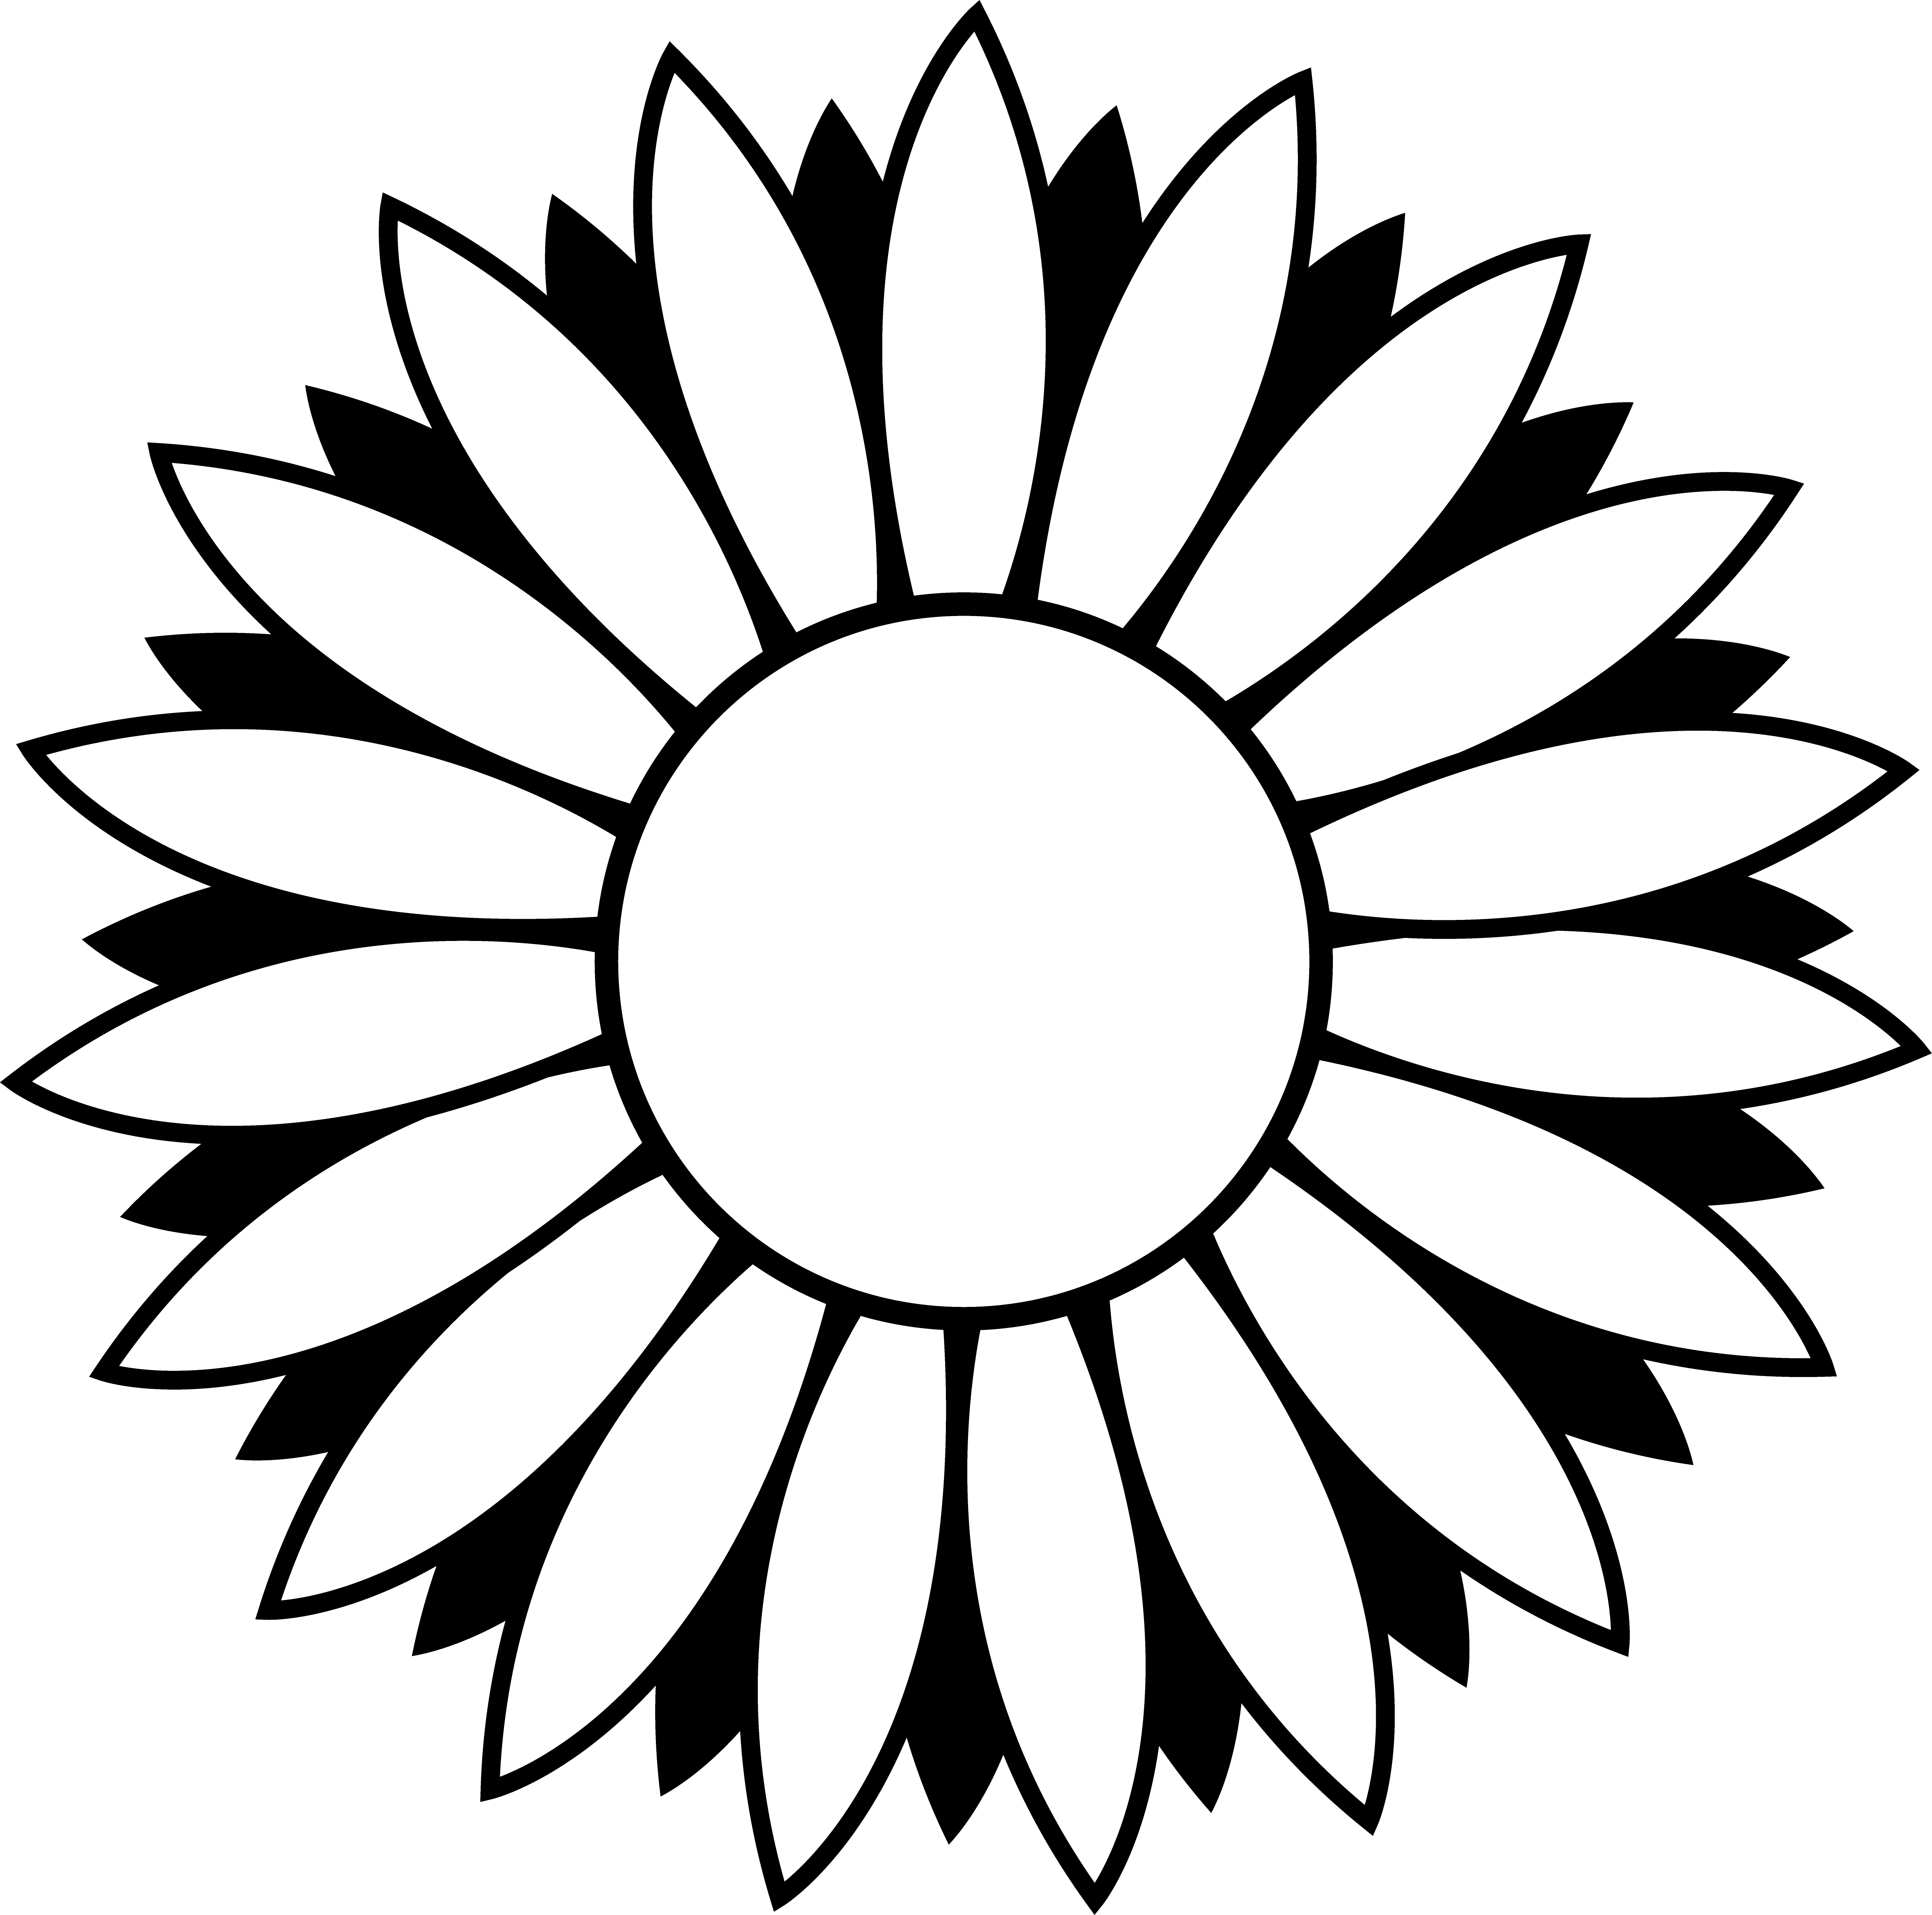 Line drawing of a flower free download best line drawing of a 5137x5092 black line flowers clipart best drawing of sumgun mightylinksfo